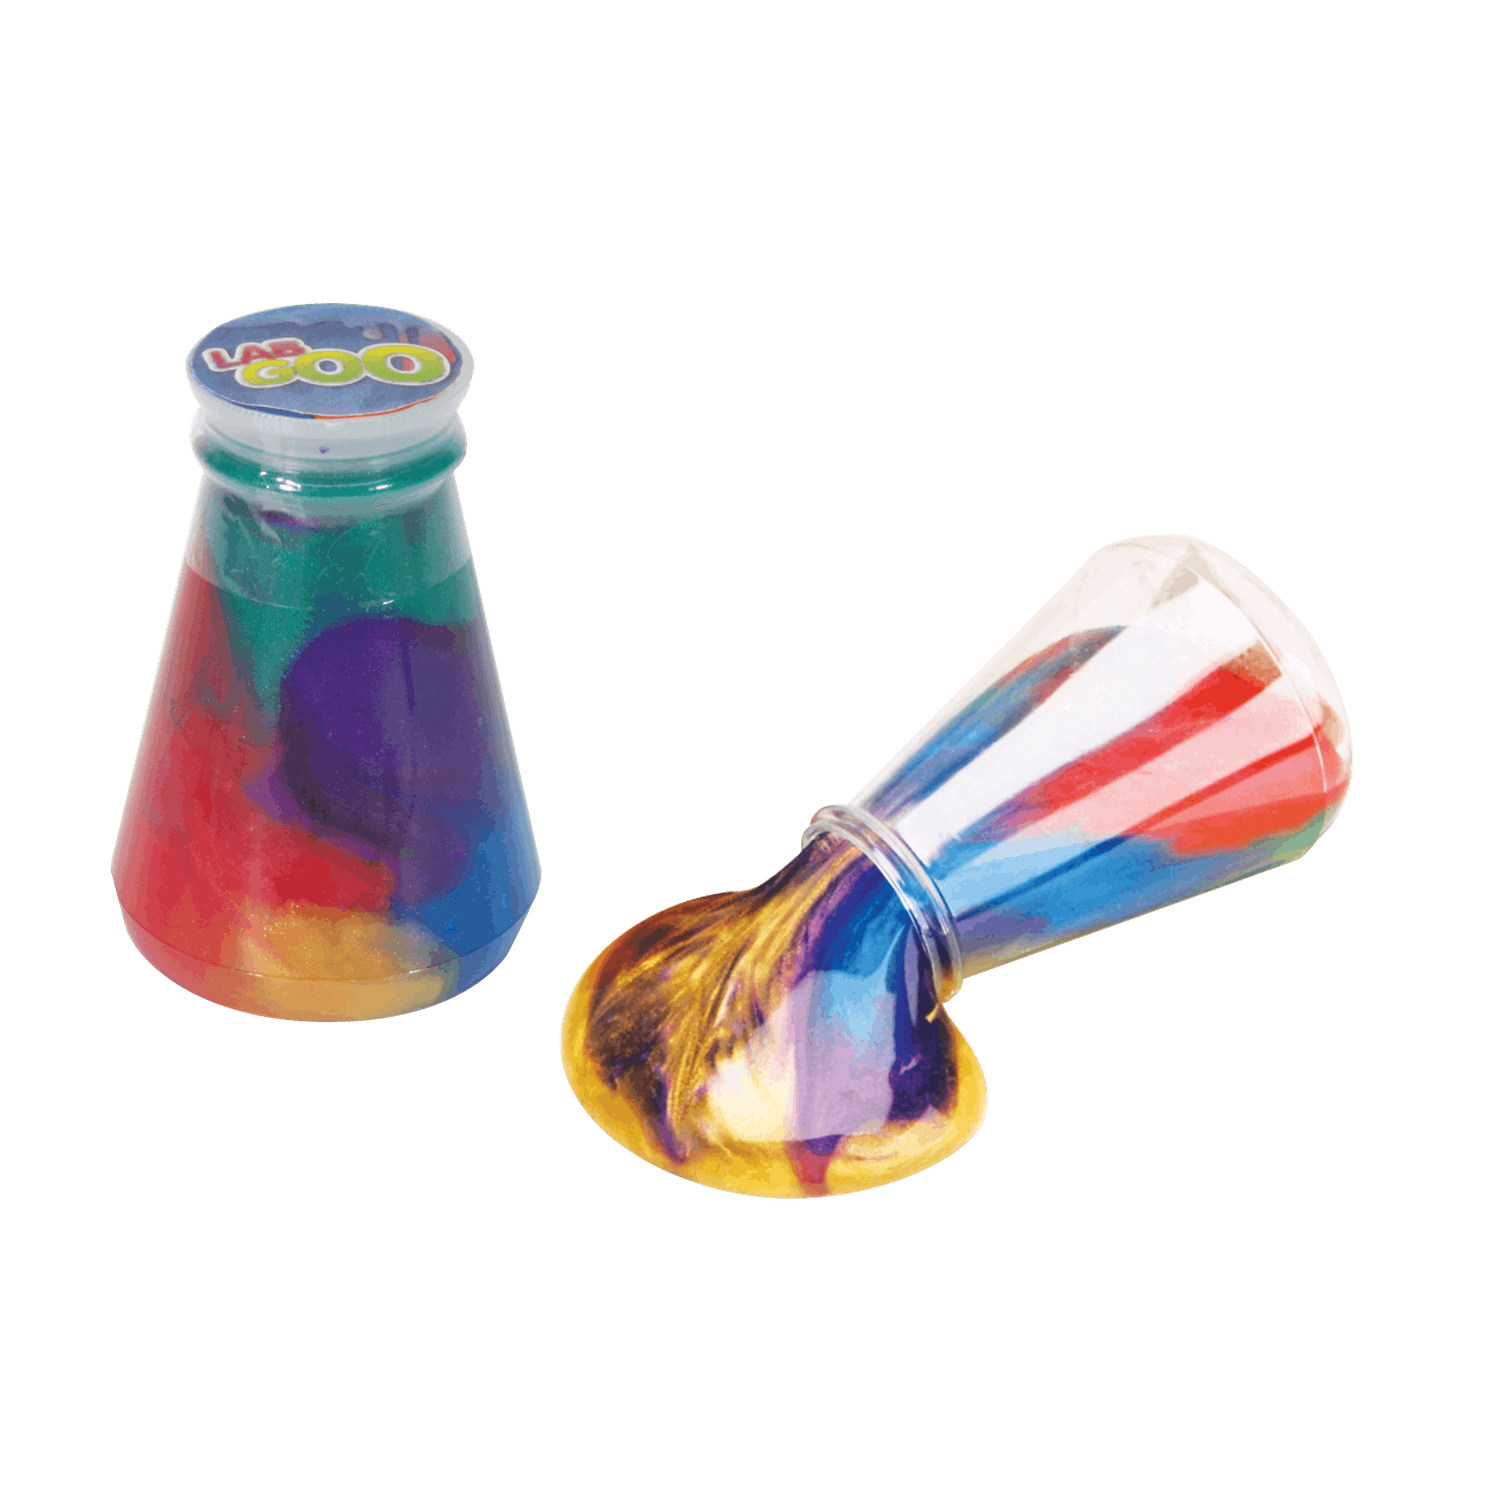 Lab Goo Rainbow Slime